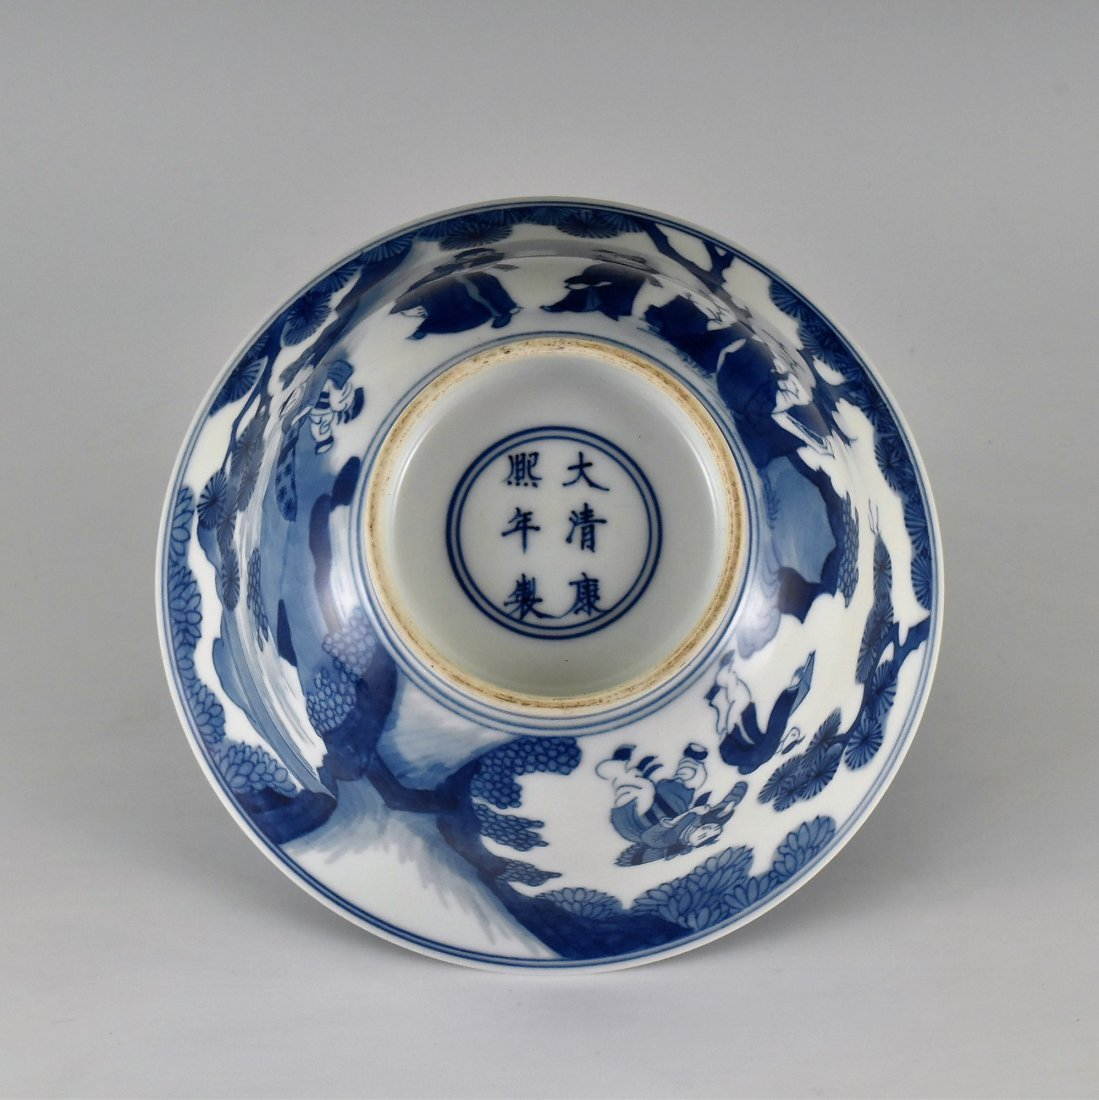 BLUE AND WHITE BOWL ON STAND, KANGXI MARK - 3